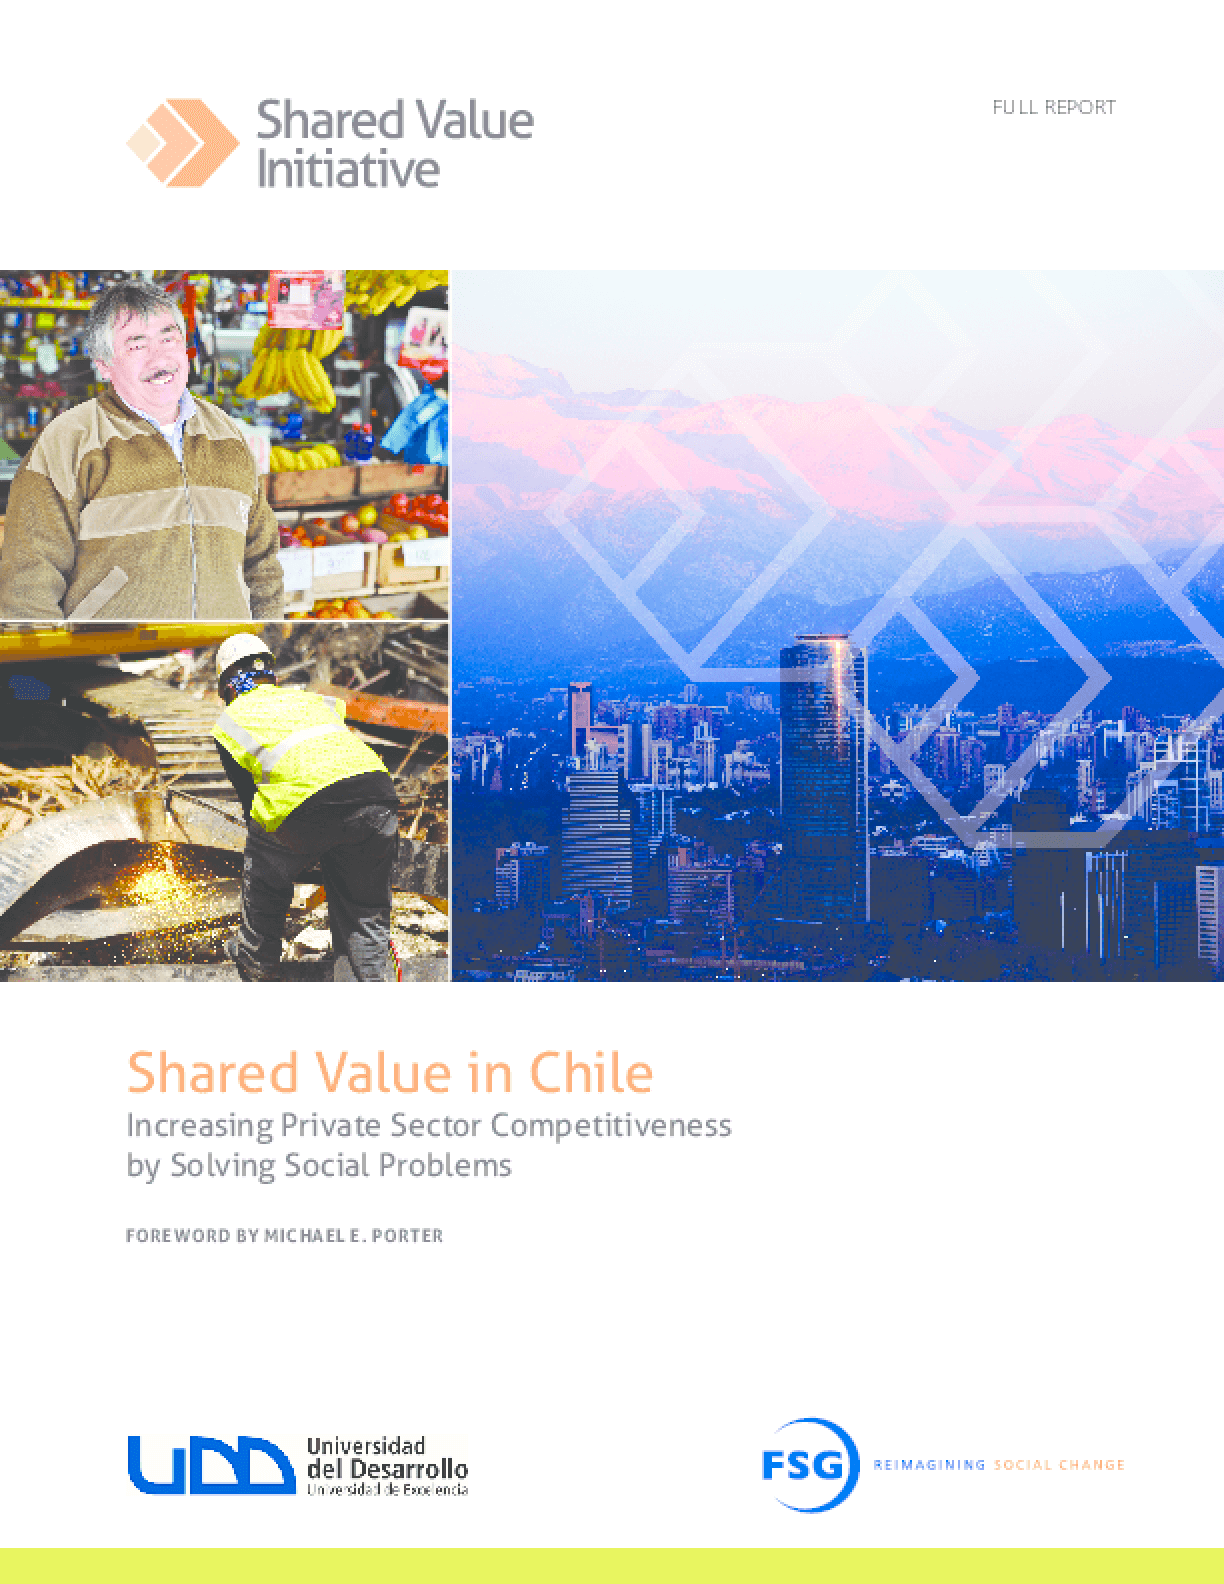 Shared Value in Chile: Increasing Private Sector Competitiveness by Solving Social Problems